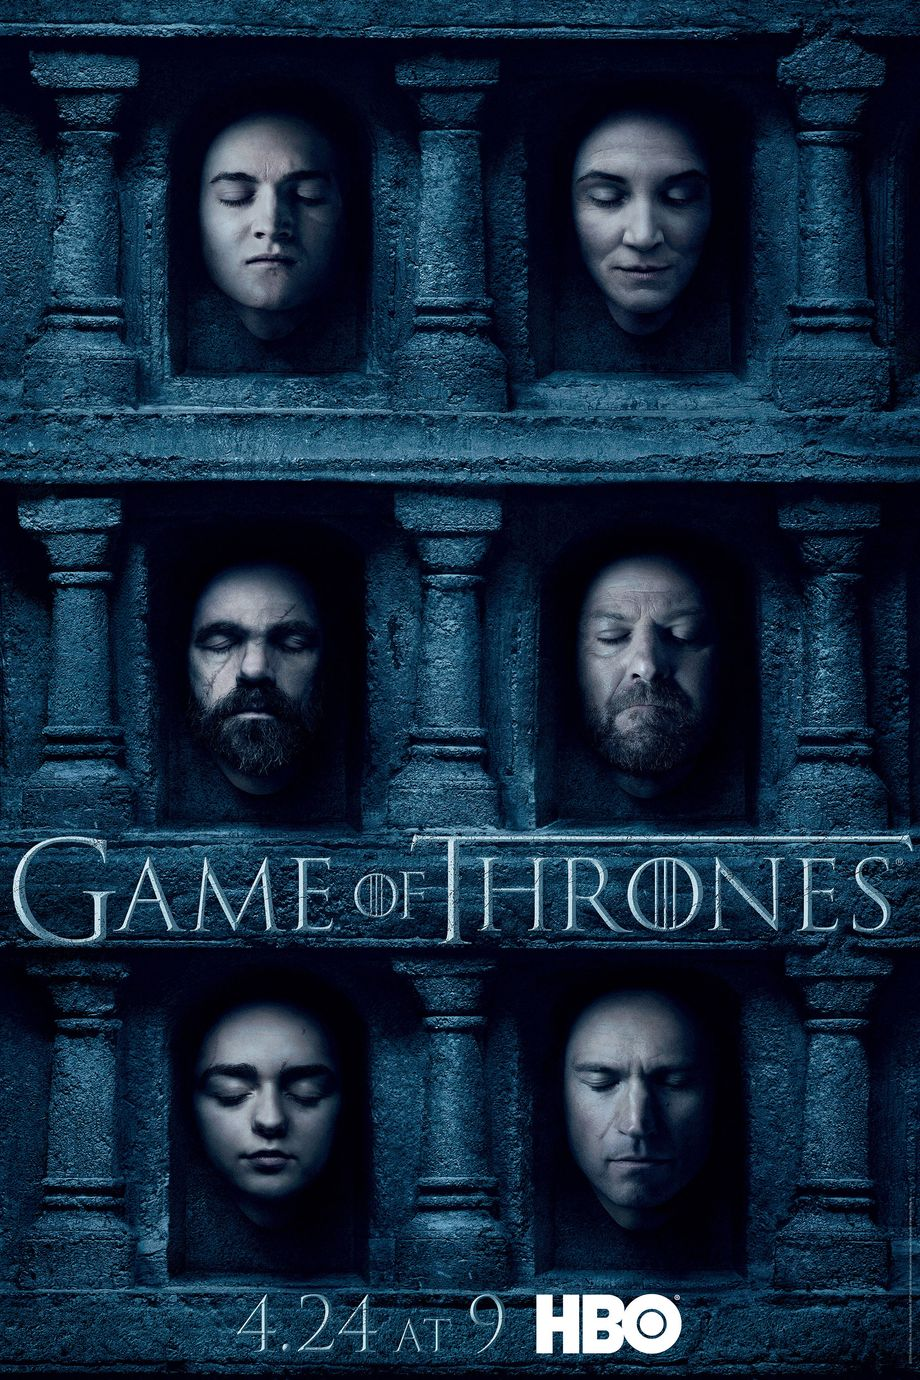 How Game Of Thrones Made All Those Viral Posters